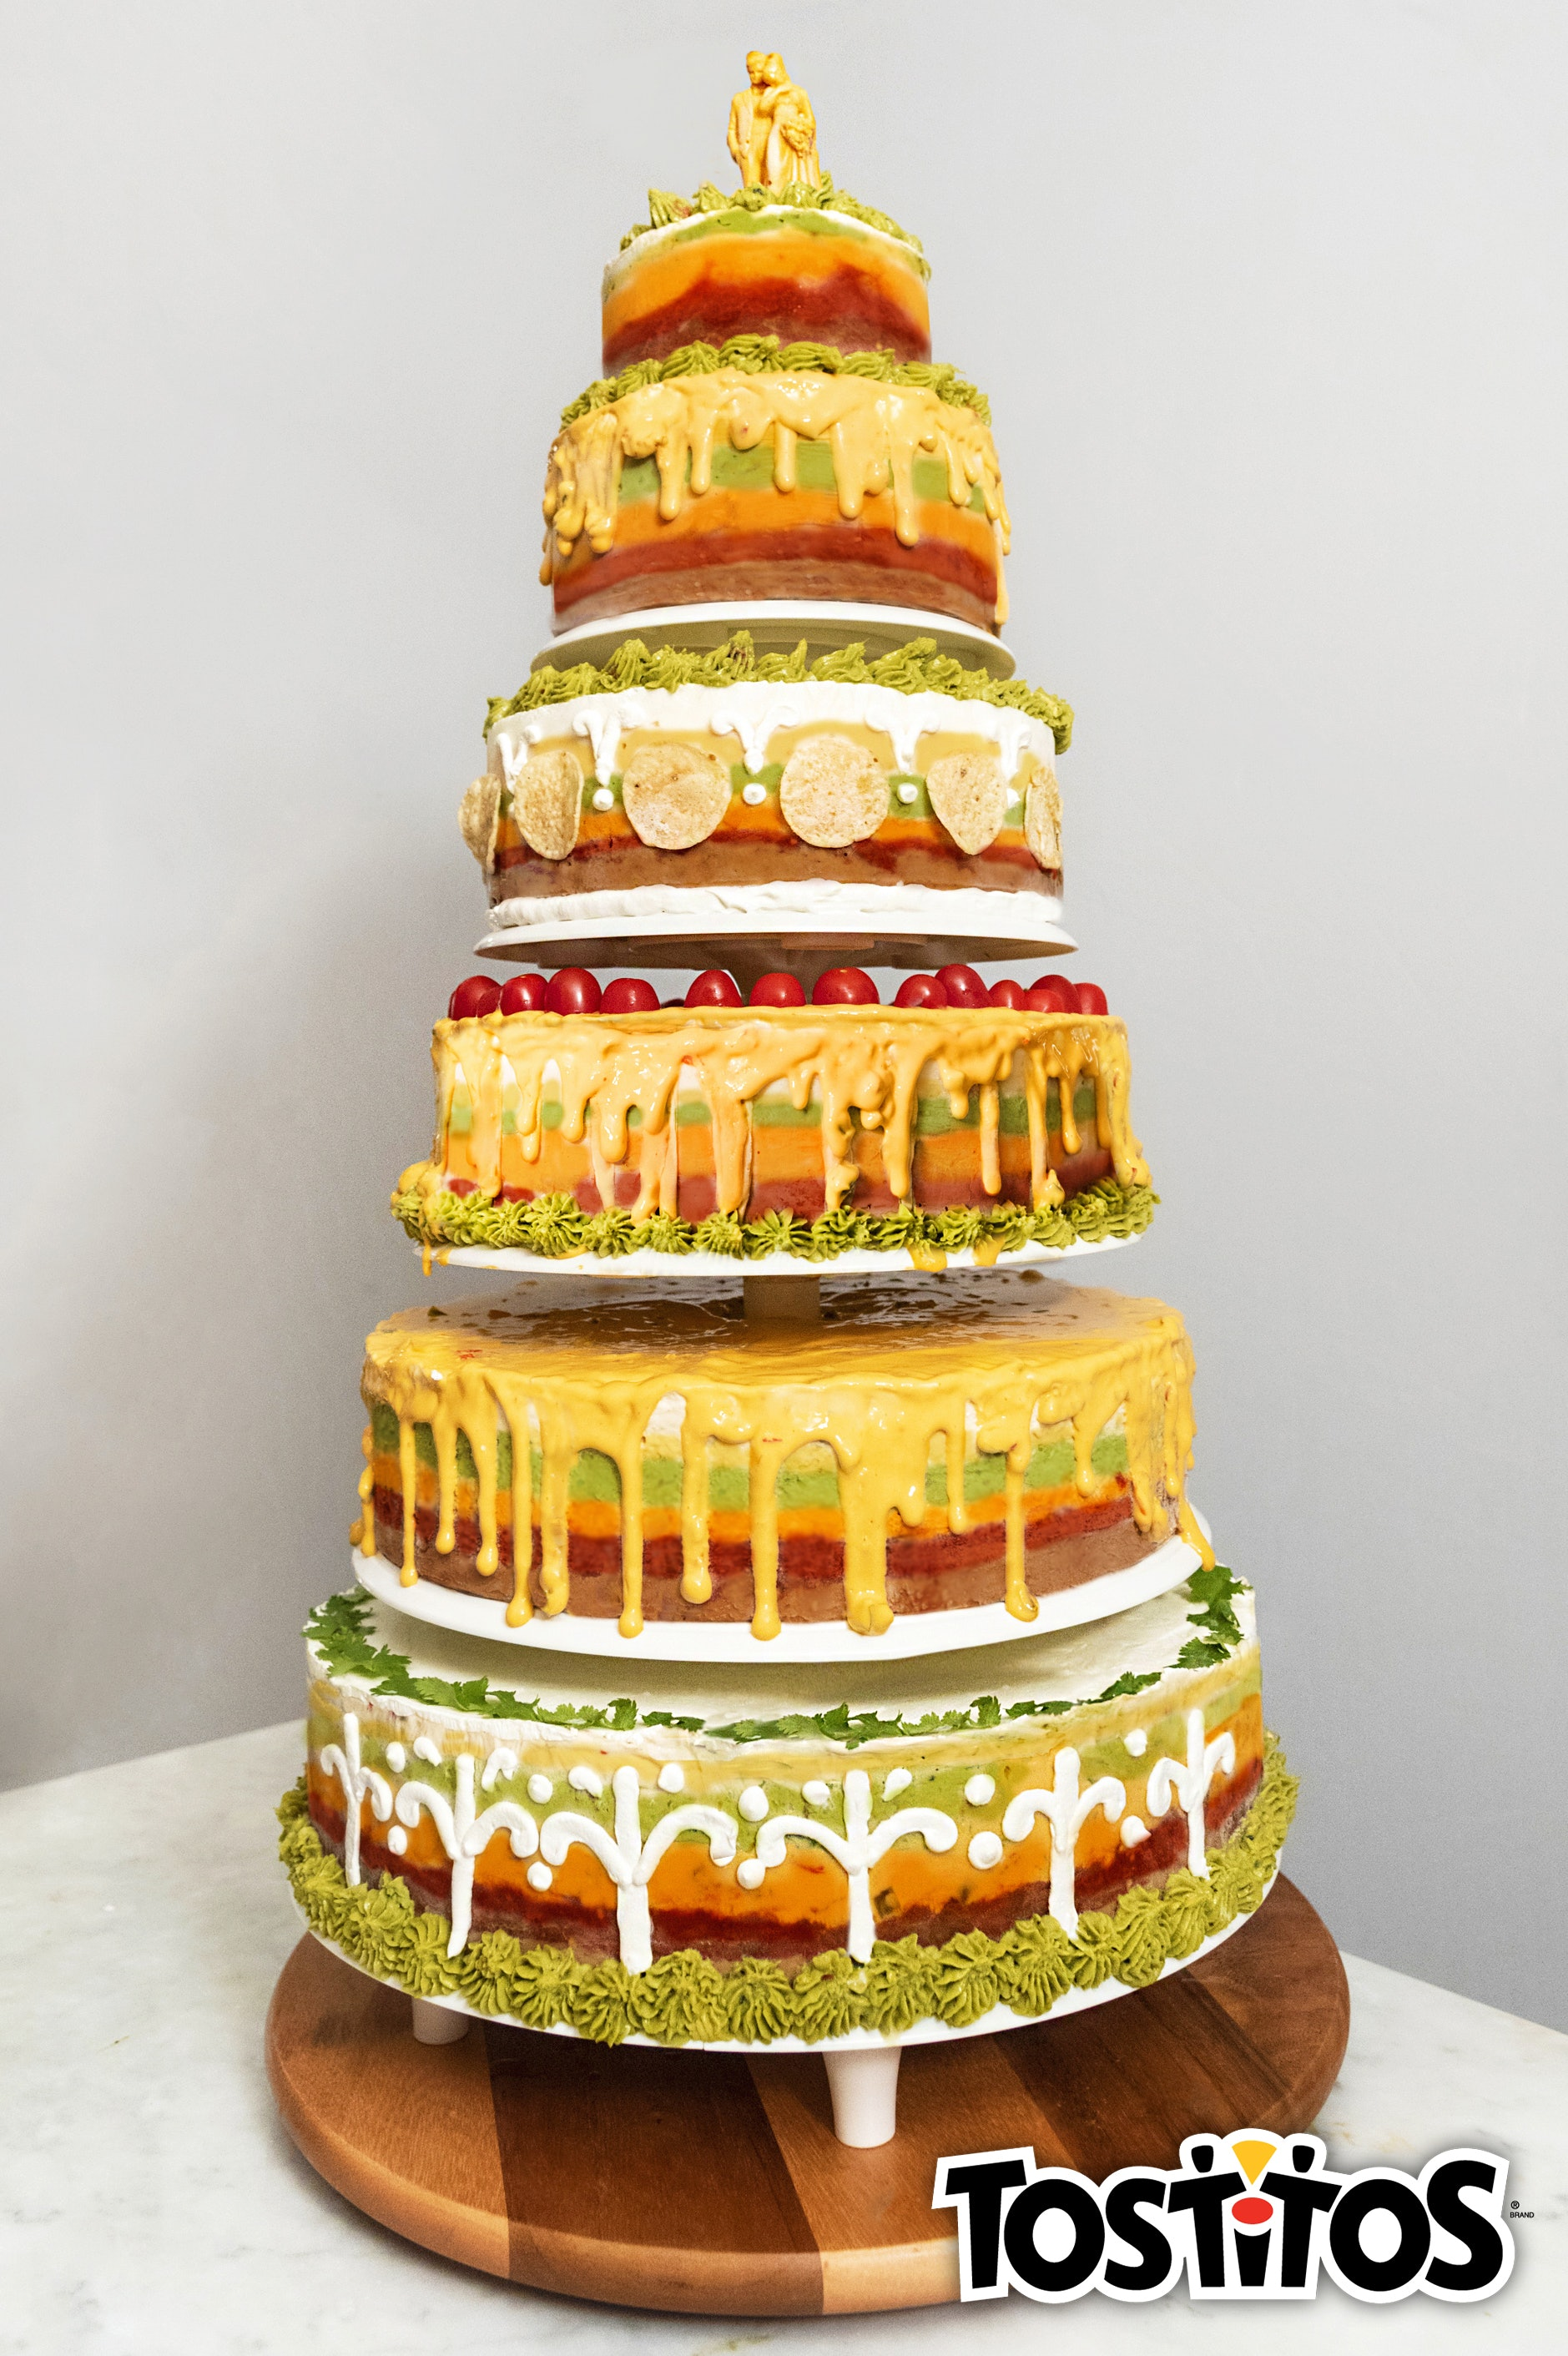 How To Make A Tostitos Wedding Cake For Meghan Markle & Prince ...